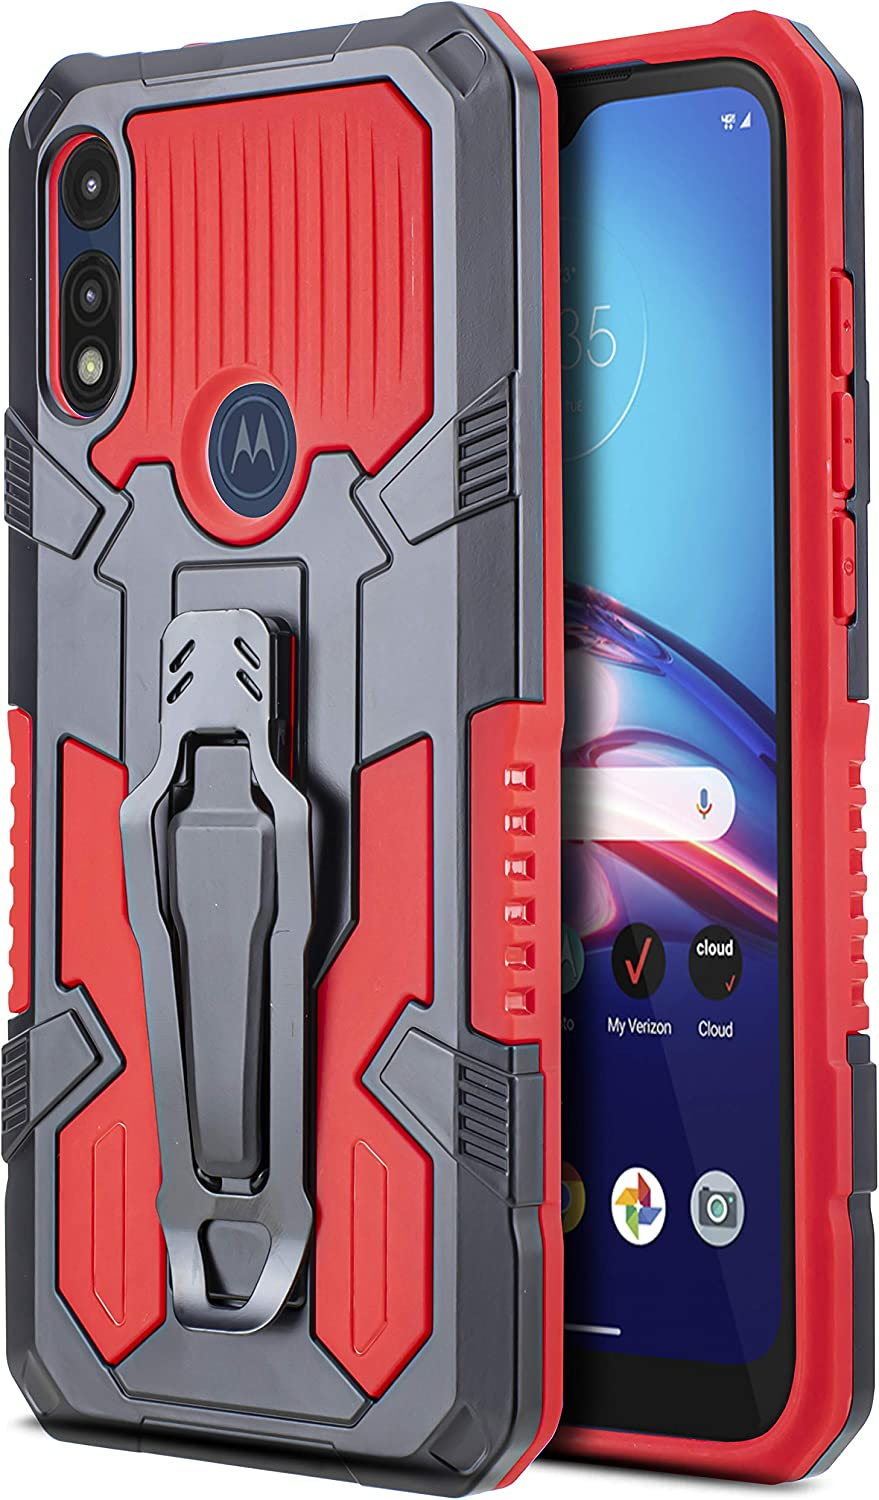 CasemartUSA Phone Case for [Motorola Moto E (2020)], [Apex Series][Red] Shockproof Cover with Belt Clip and Kickstand for Moto E (2020) T-Mobile, Metro, Boost, Consumer Cellular, Simple Mobile